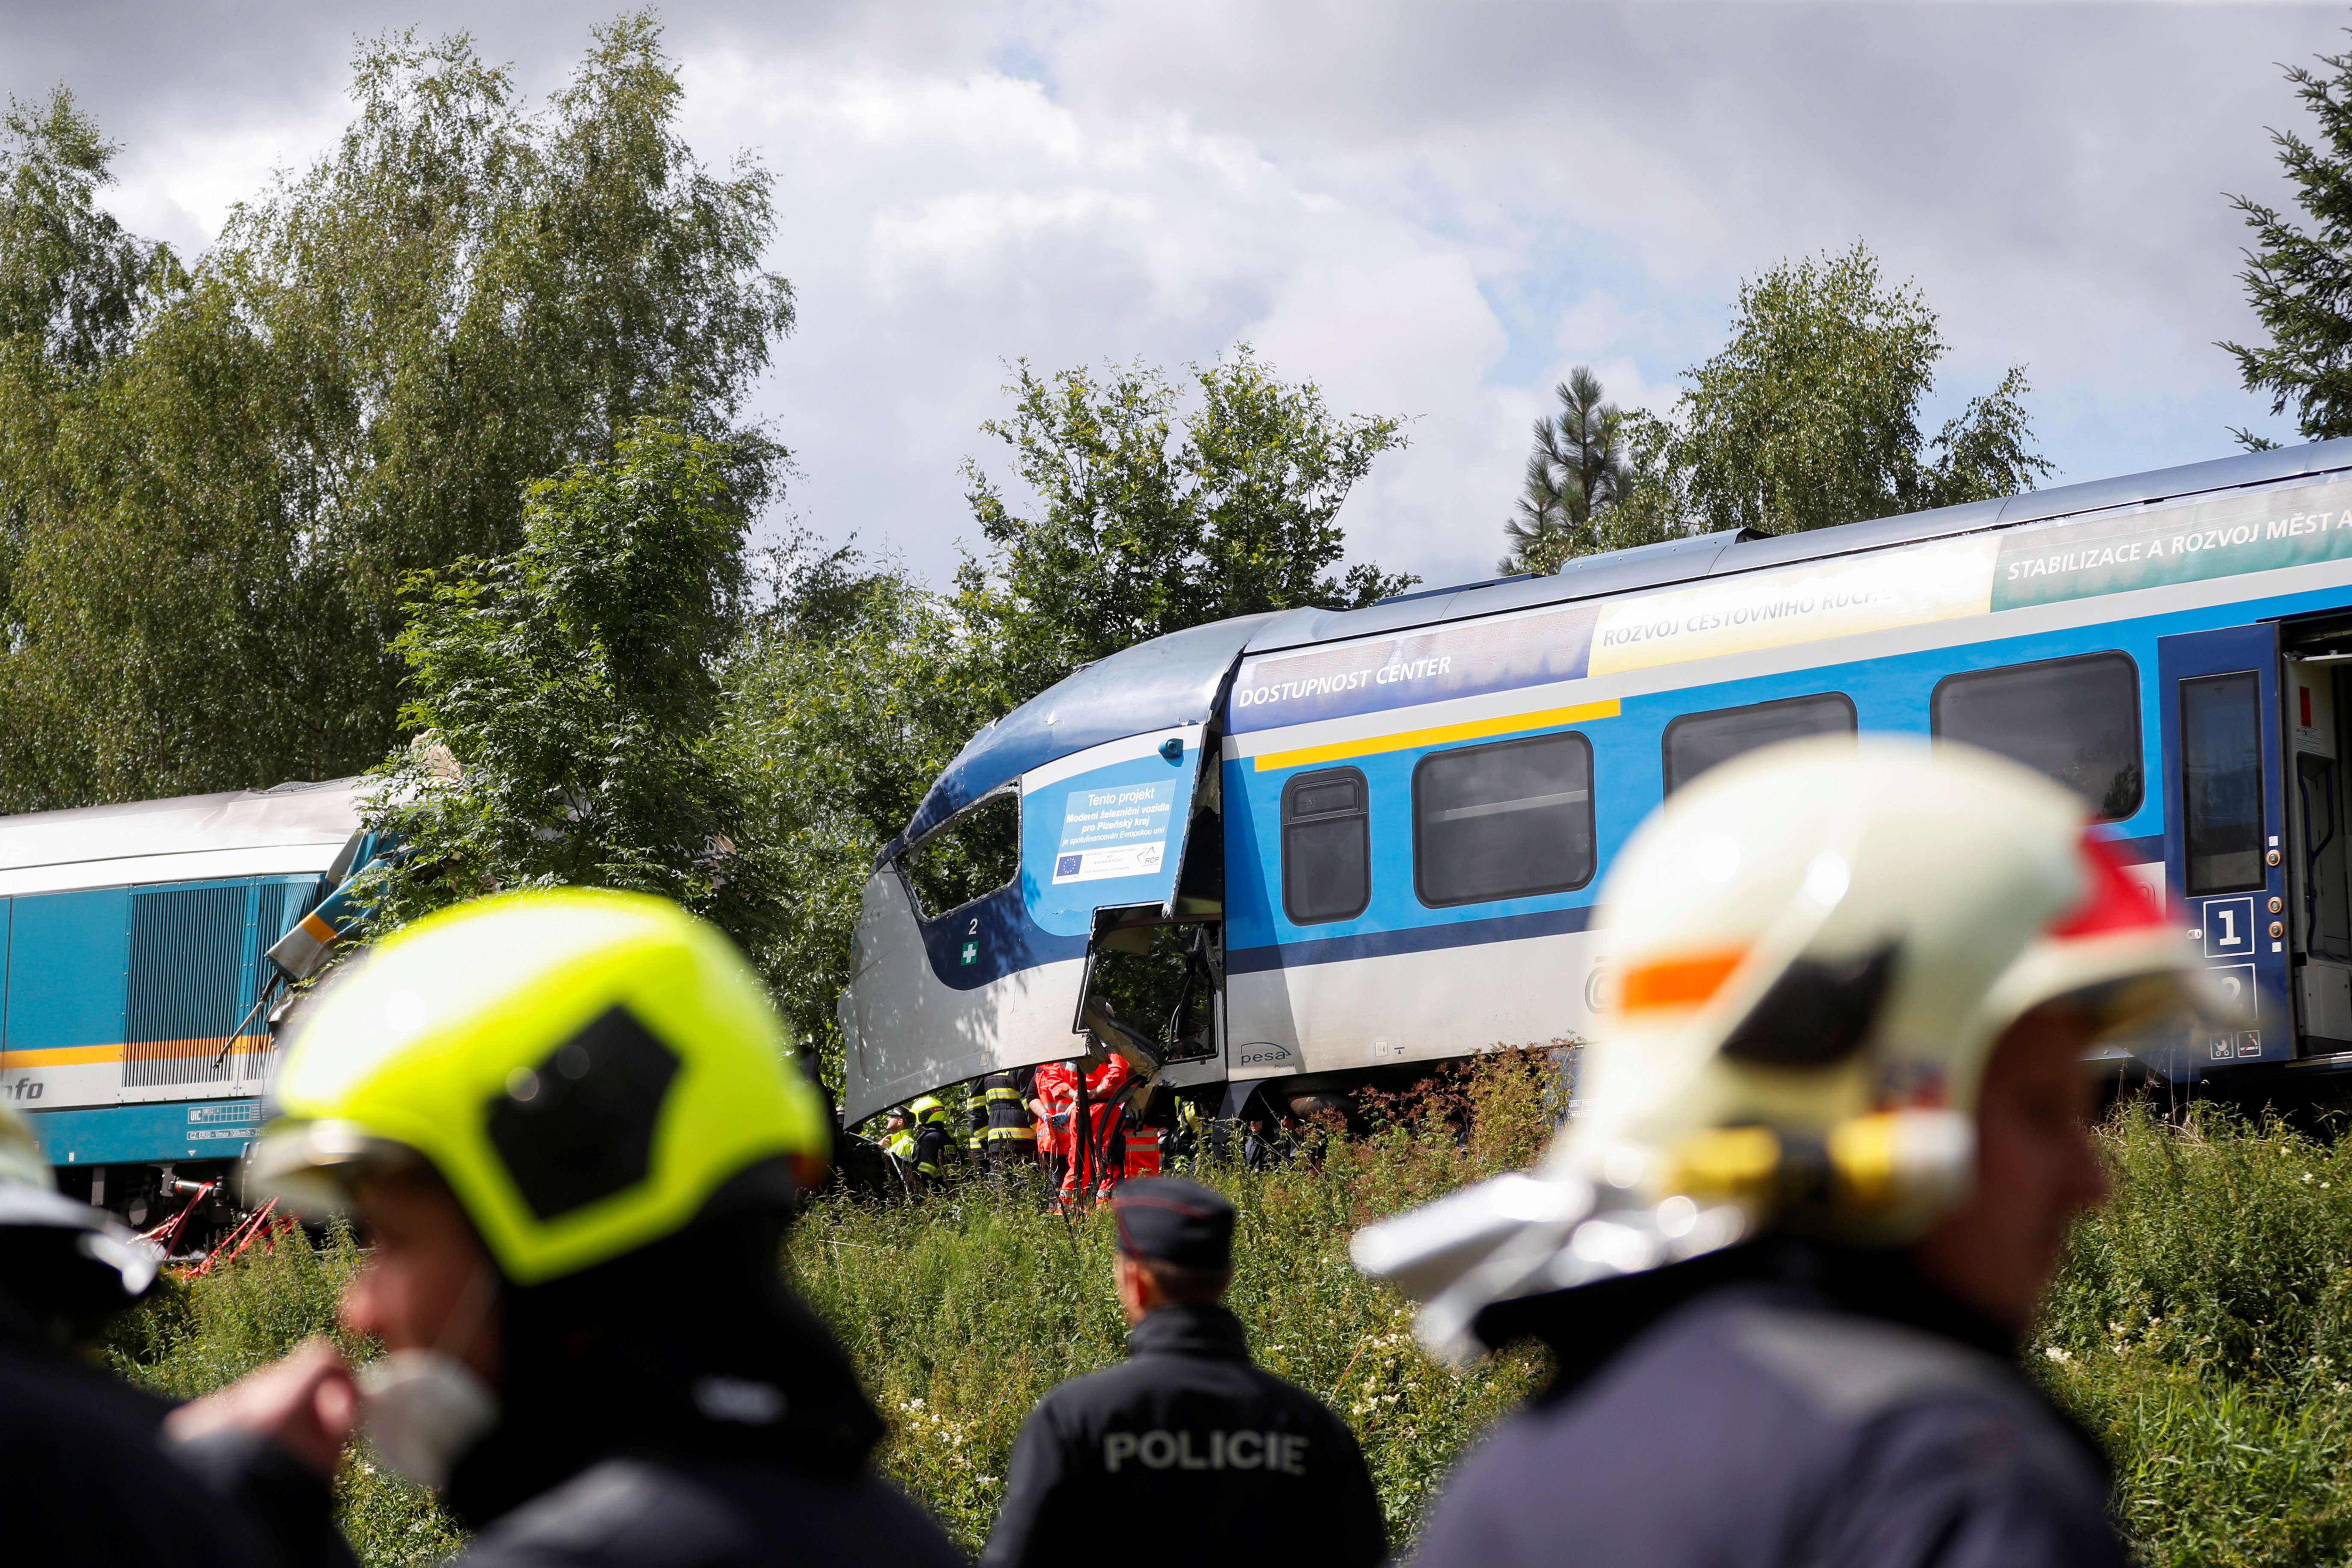 A police officer and firefighters work on a site of a train crash near the town of Domazlice, Czech Republic, August 4, 2021. REUTERS/David W Cerny